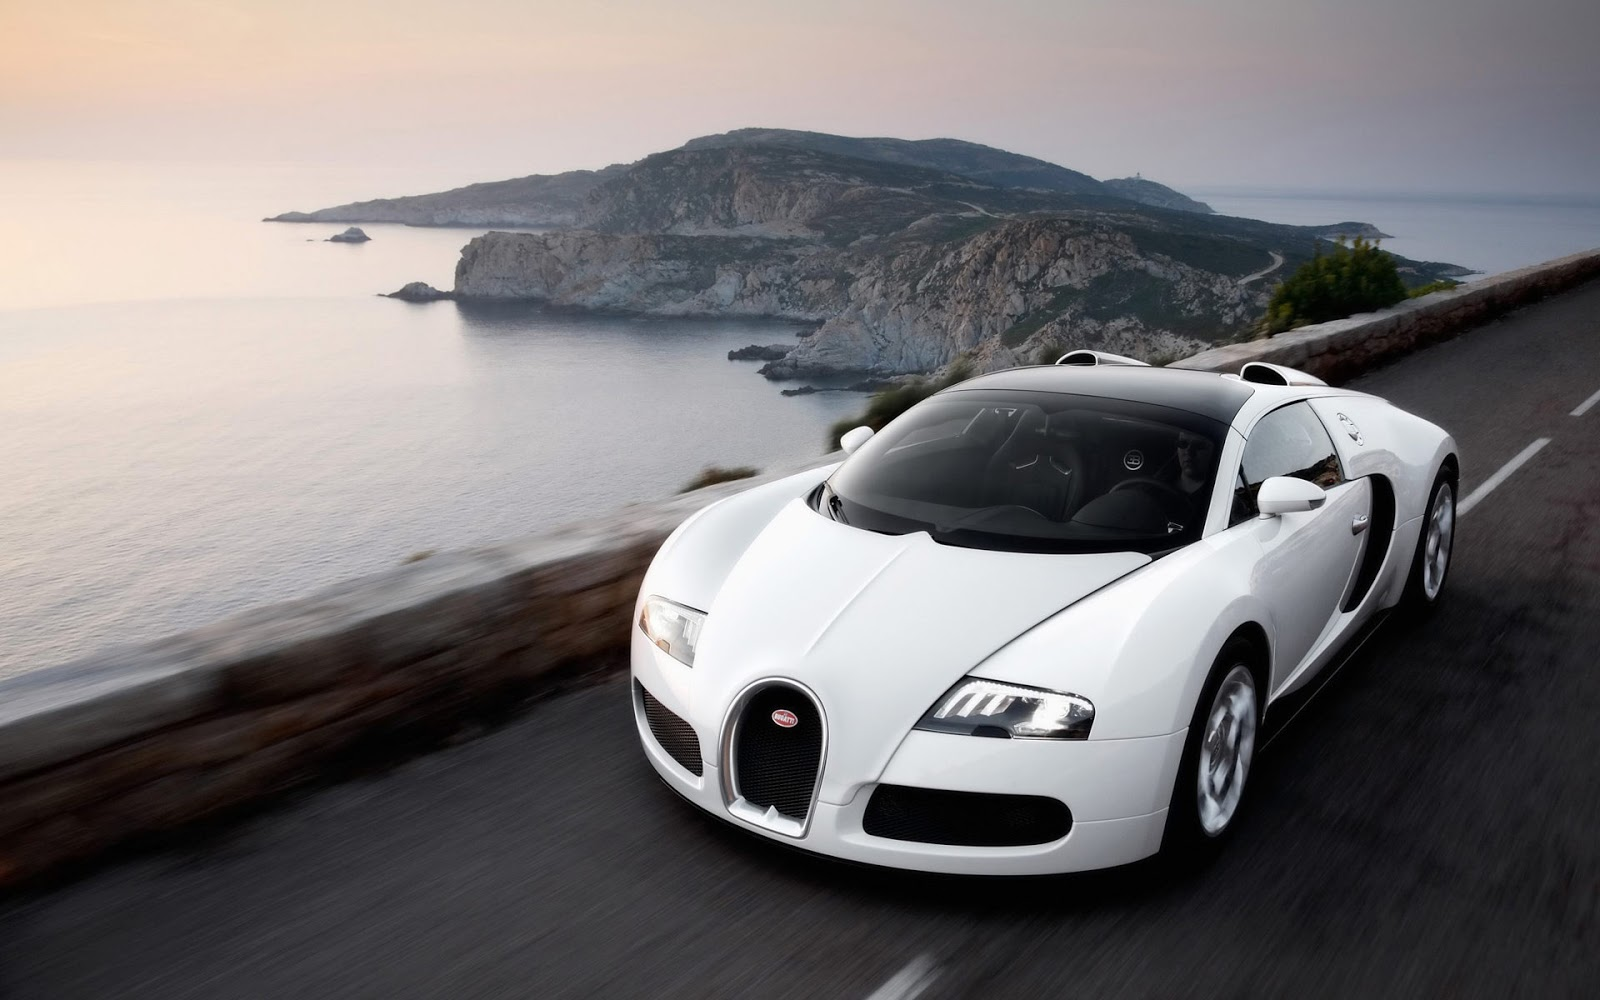 Bugatti Veyron Super Sport Wallpaper Image View Wallpapers